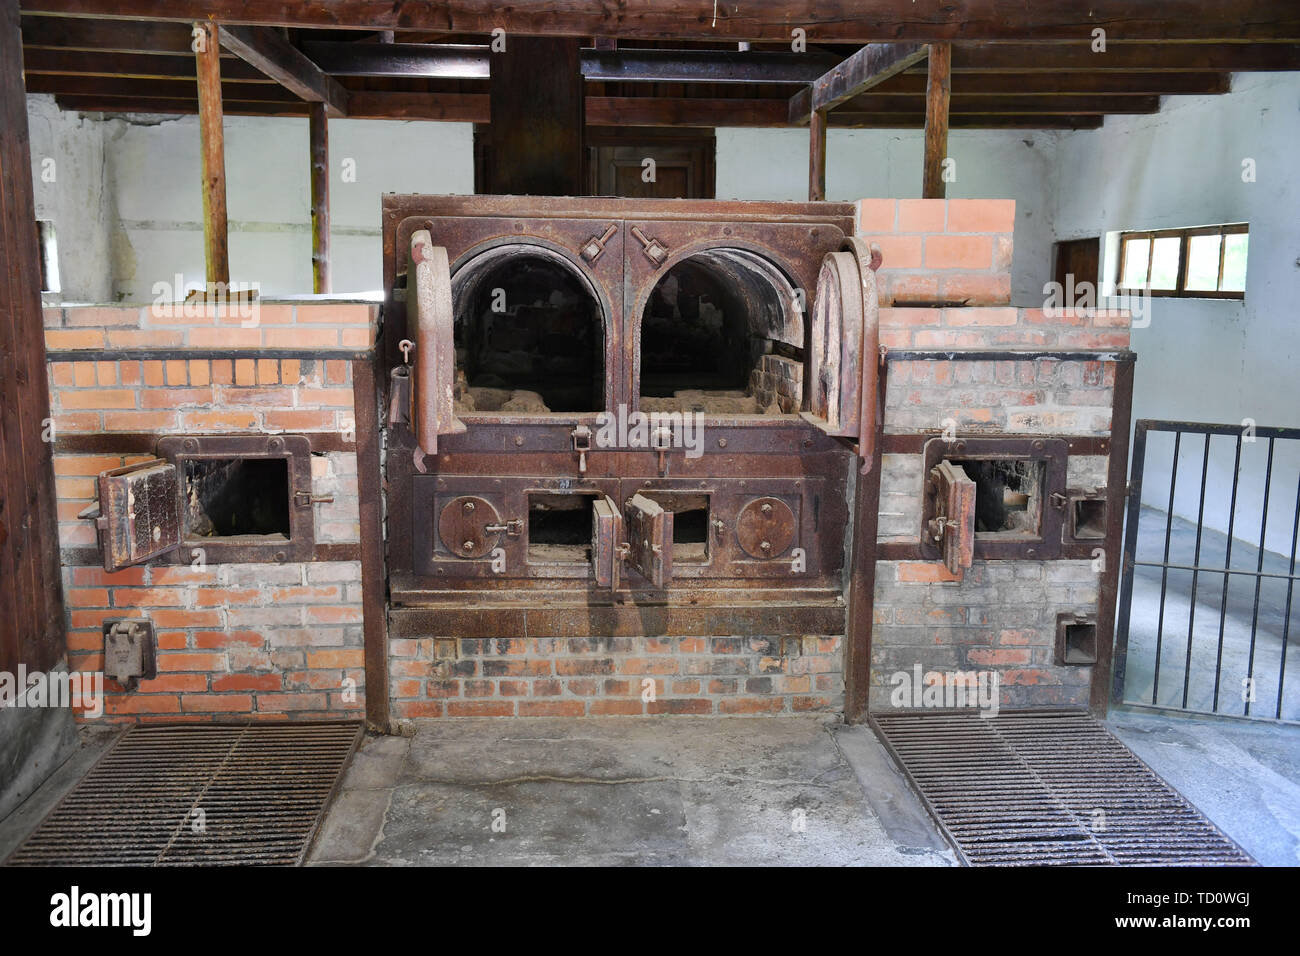 Dachau, Deutschland. 10th June, 2019. Gedenkstaette Concentration Camp Dachau Crematorium, Incineration, Memorial, Furnace for combustion, Incinerator, 1933, 1945, 3, Antisewithism, exterminate, Extermination, Bavaria, Dachau, Deportation, German, German History, Germany, third, Europe, fascism, fascists, fascist, Commemoration, Memorial, History, Jews, Concentration camp, Concentration camp, Memorial, National Socialism, Nazi, Nazi, Nazi, Reich, Crime, Past, Annihilation, Extermination Camp Usual worldwide Credit: dpa/Alamy Live News - Stock Image